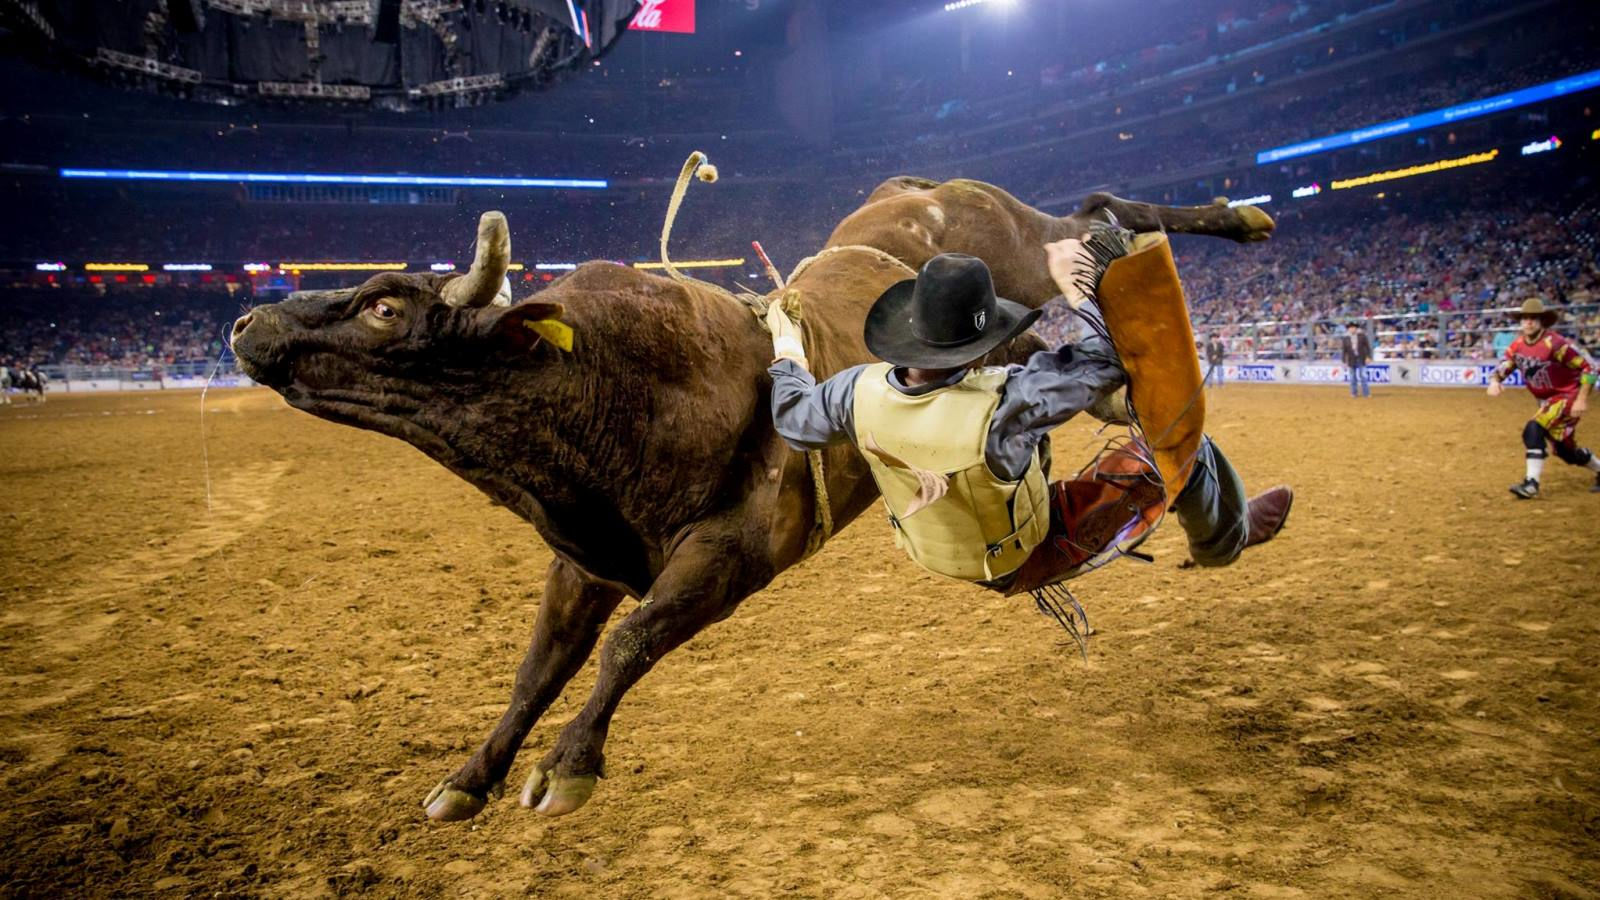 Image Courtesy of The Houston Livestock Show and Rodeo